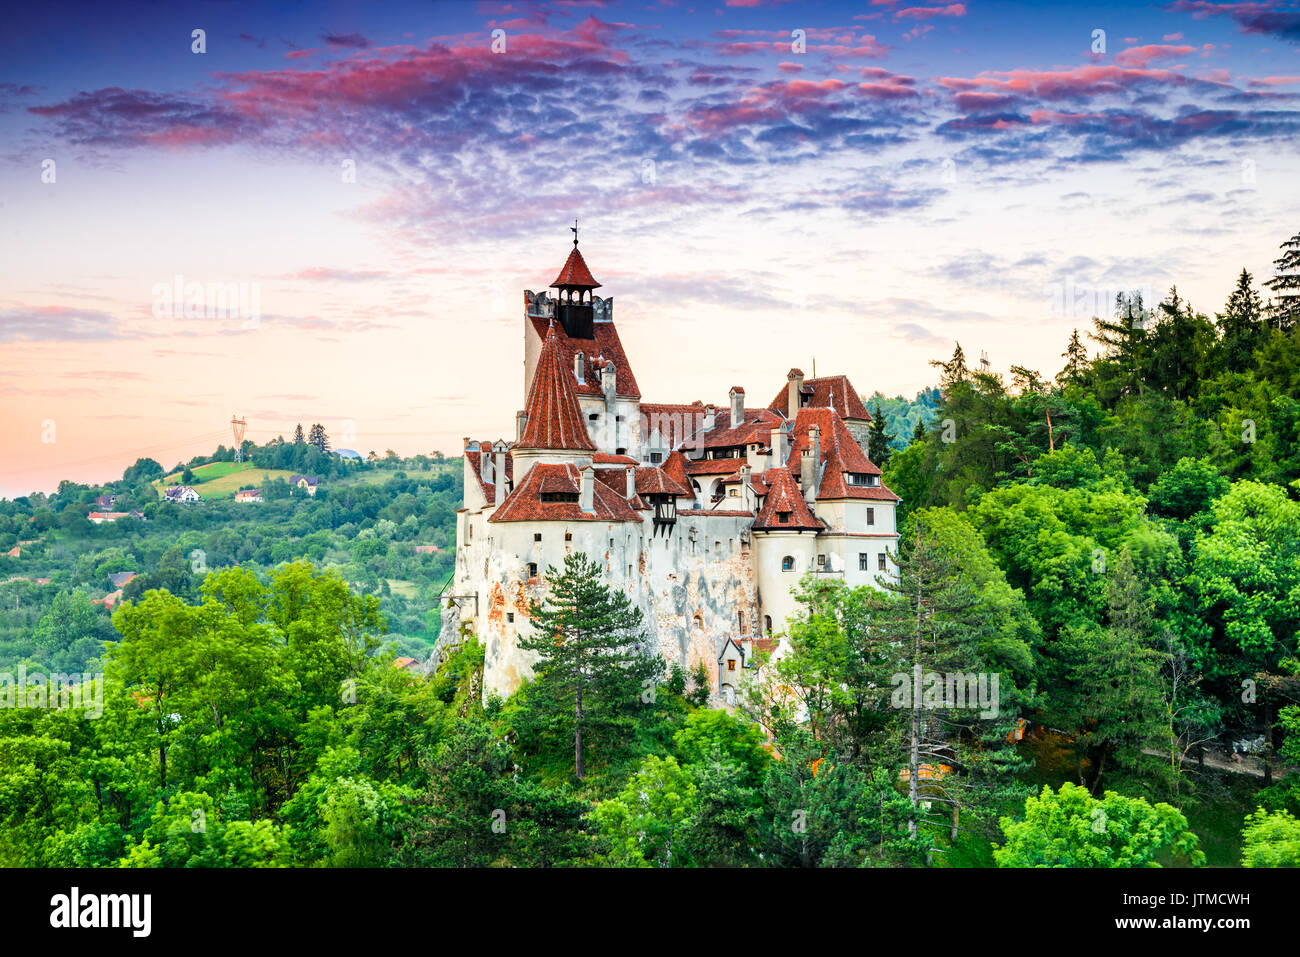 Bran Castle, Romania. Stunning HDR twilight image of Dracula fortress in Transylvania, medieval landmark. - Stock Image